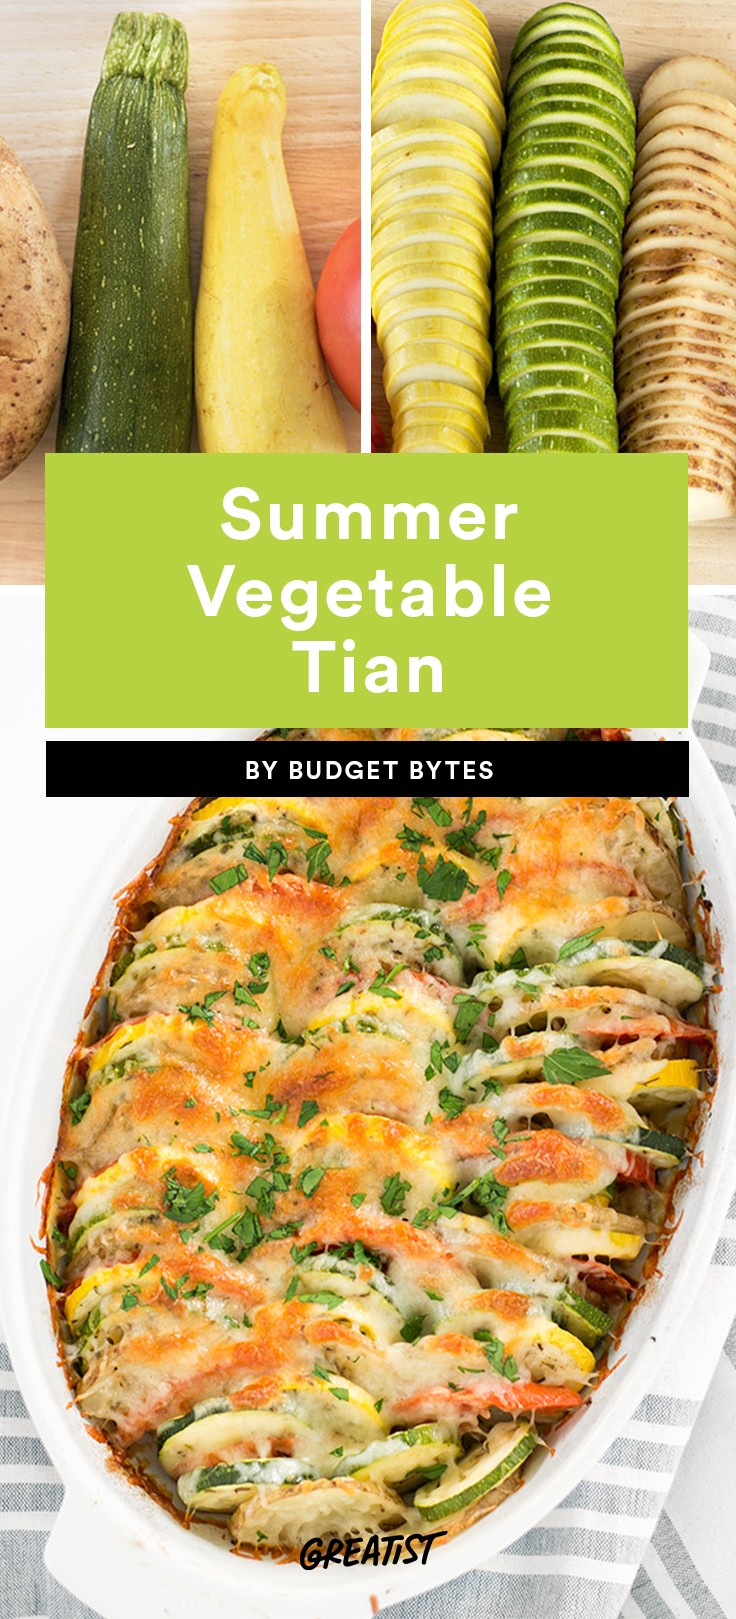 Summer Vegetable Tian Recipe